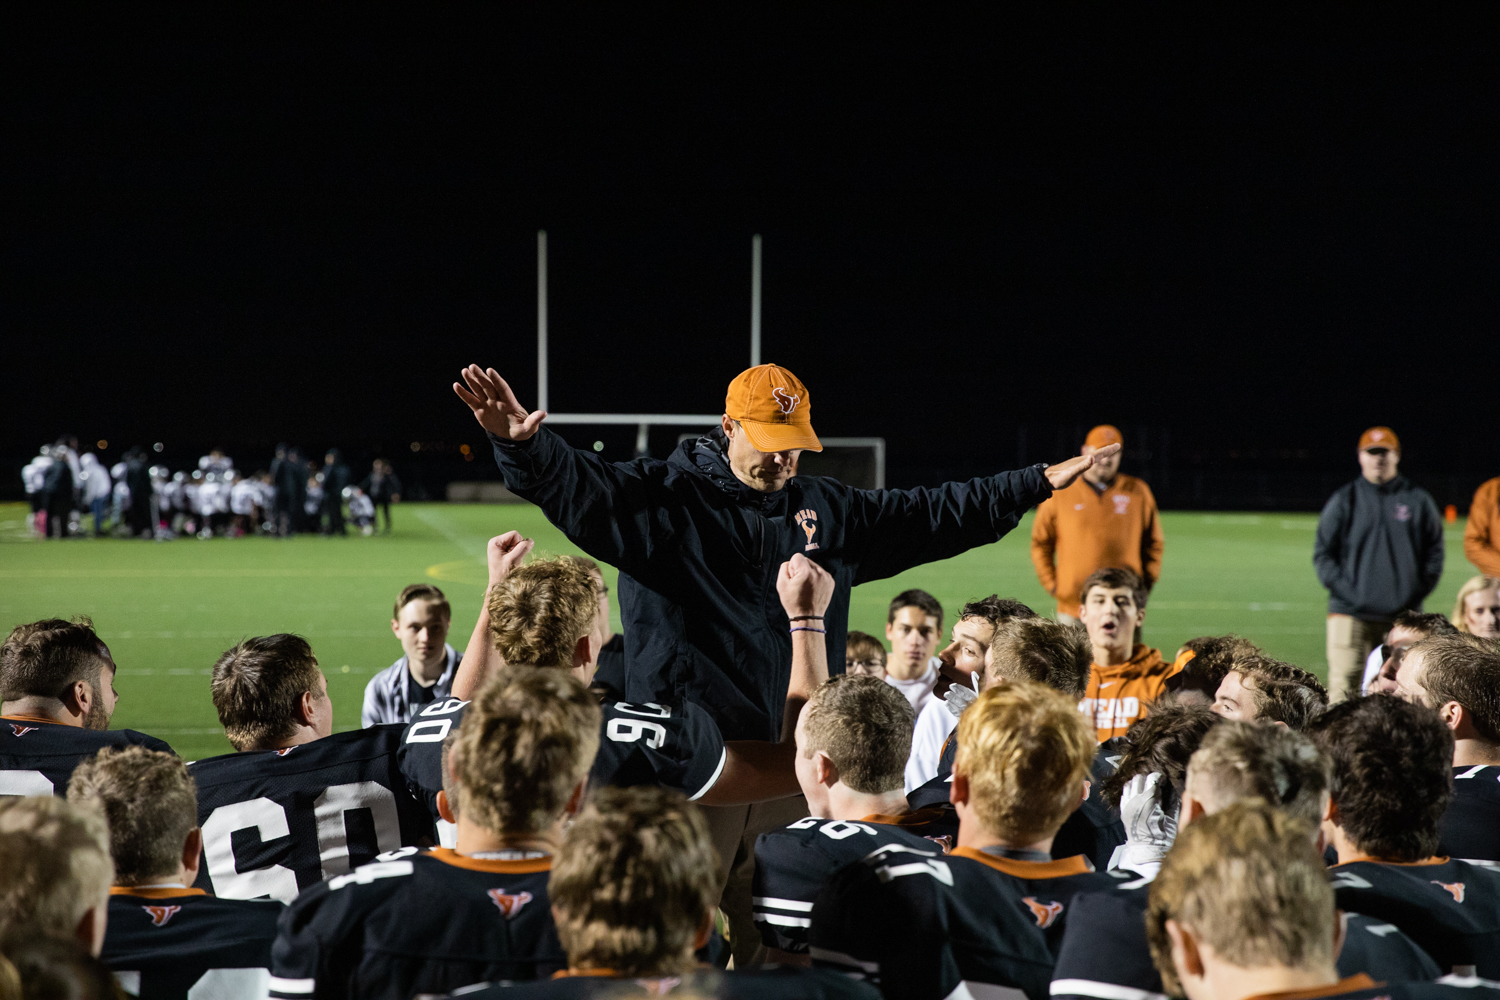 Coach+Klatt+silences+the+crowd+to+address+them+after+the+win.+In+the+background+Skyview+players+form+a+similar+crowd+around+their+coach.